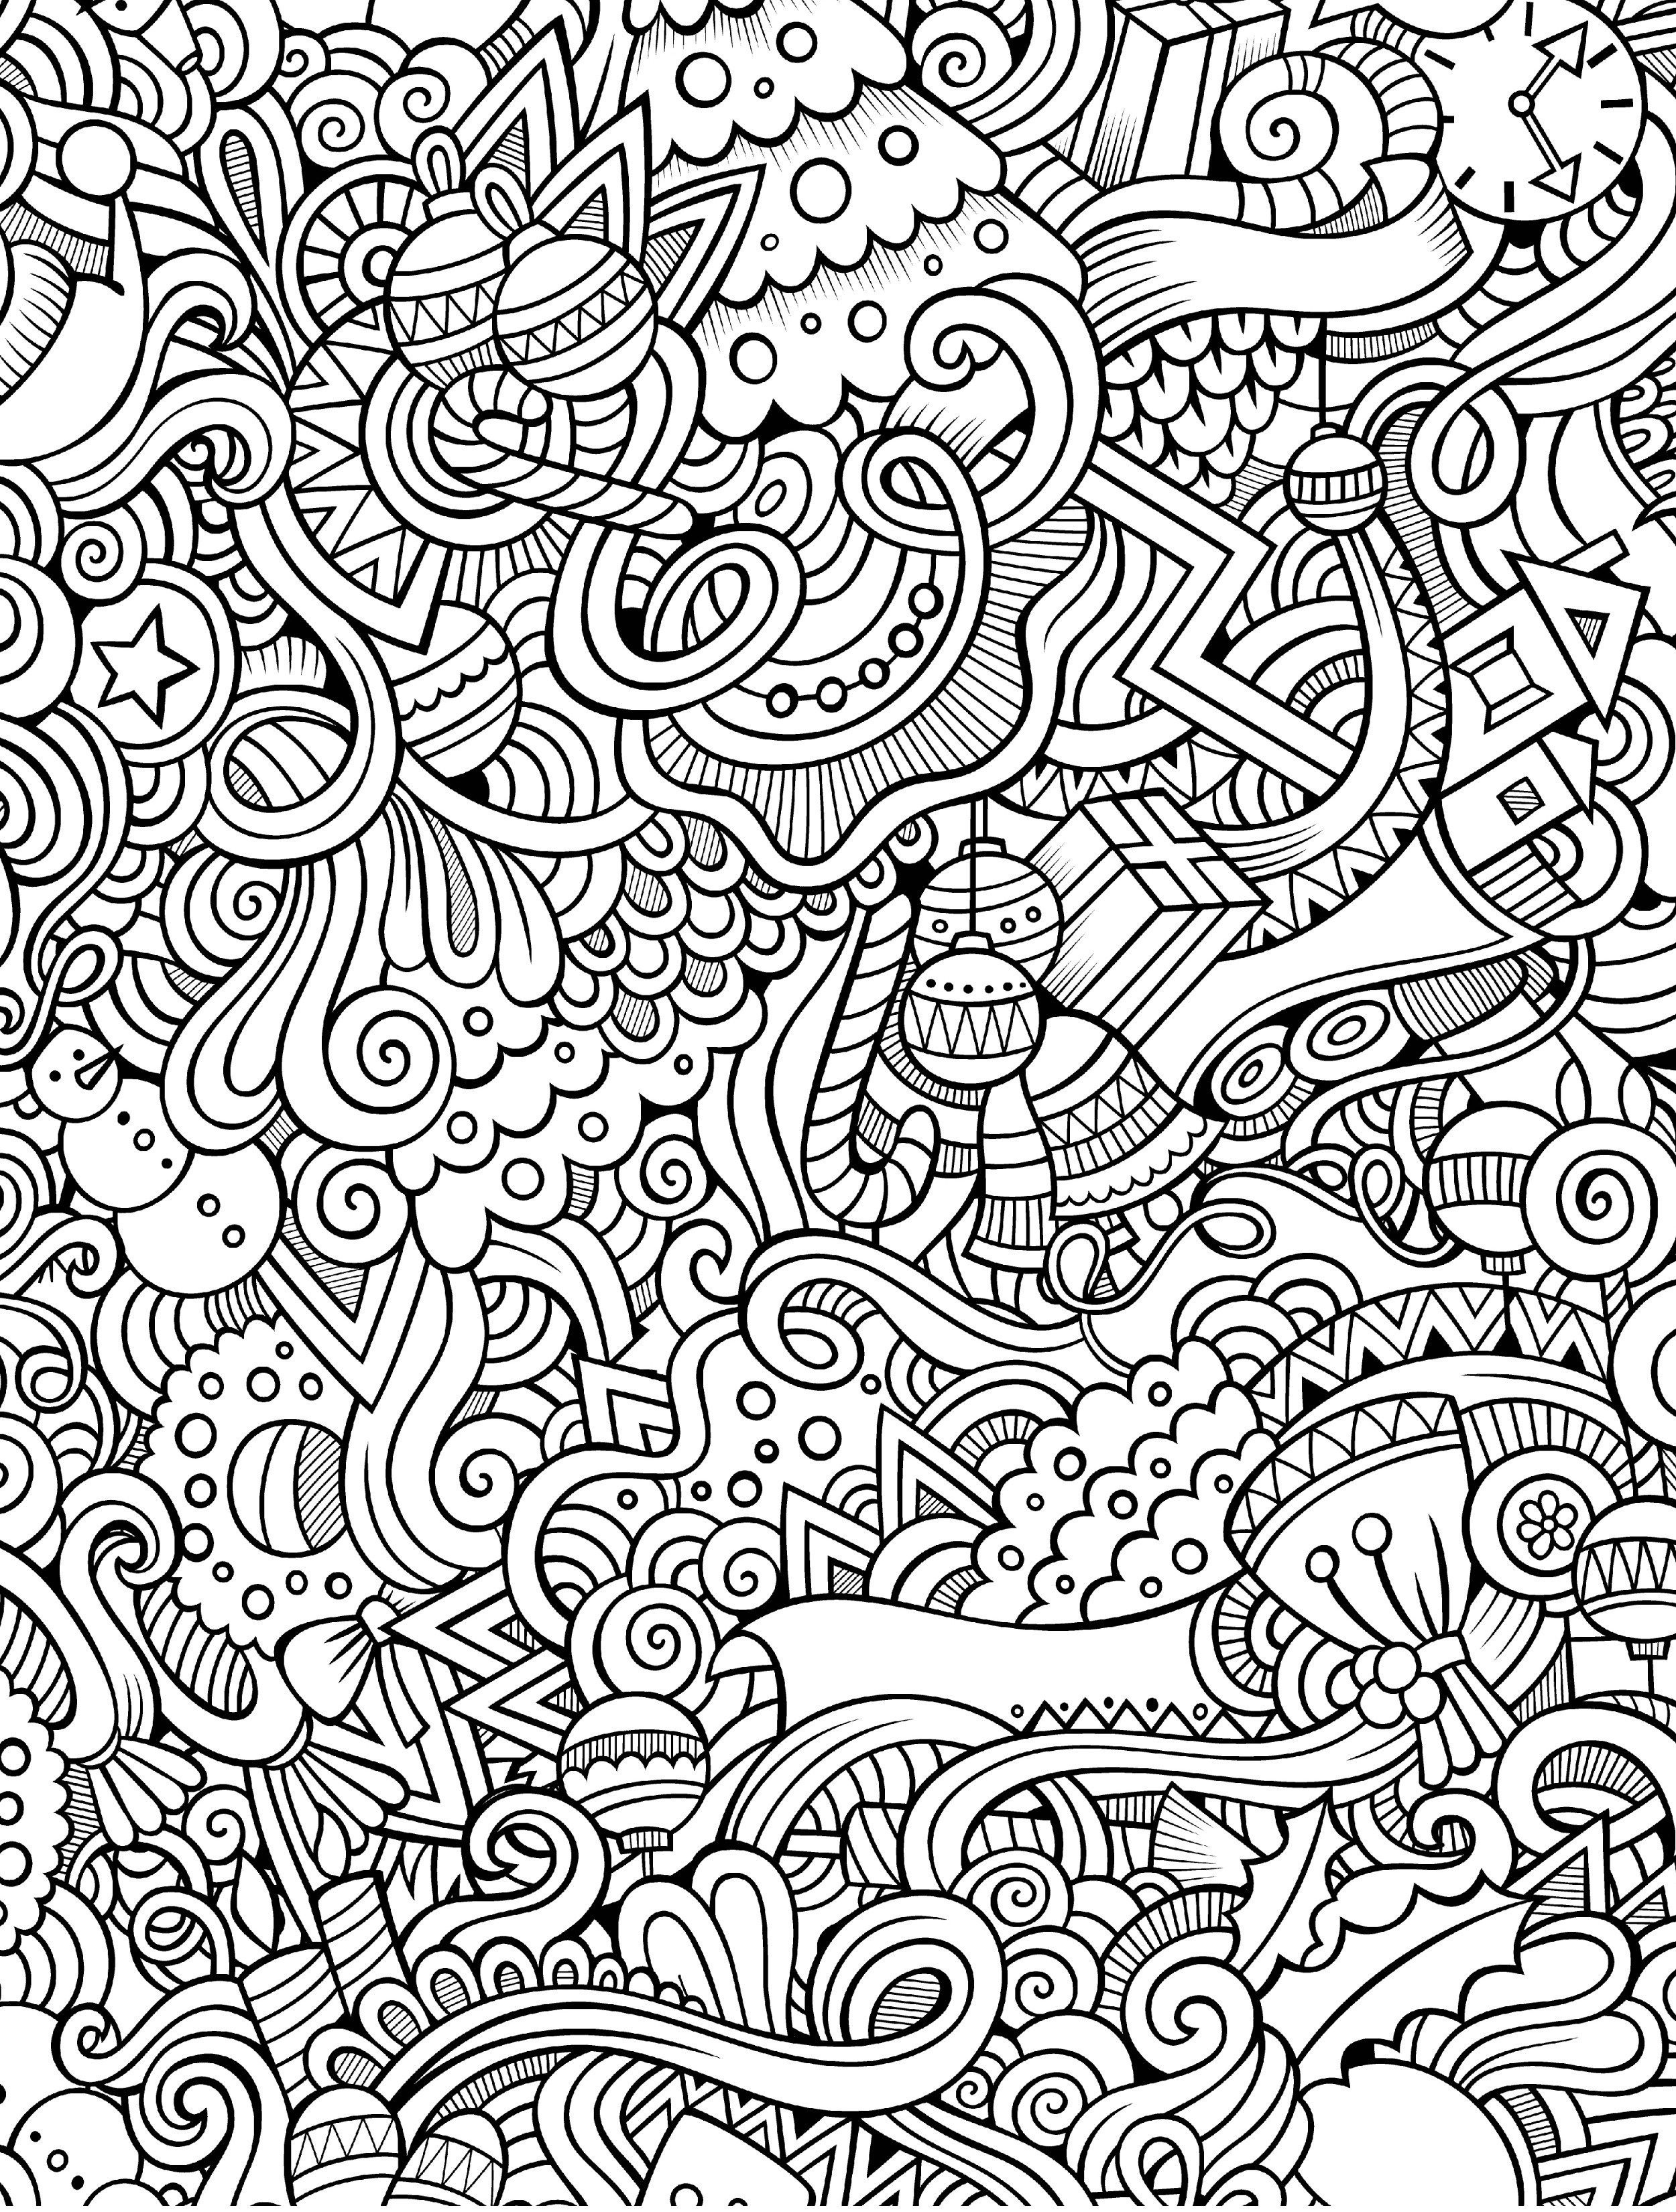 Coloring Book World ~ Coloring Page Free Printable Valentines Adult - Free Printable Coloring Books For Adults